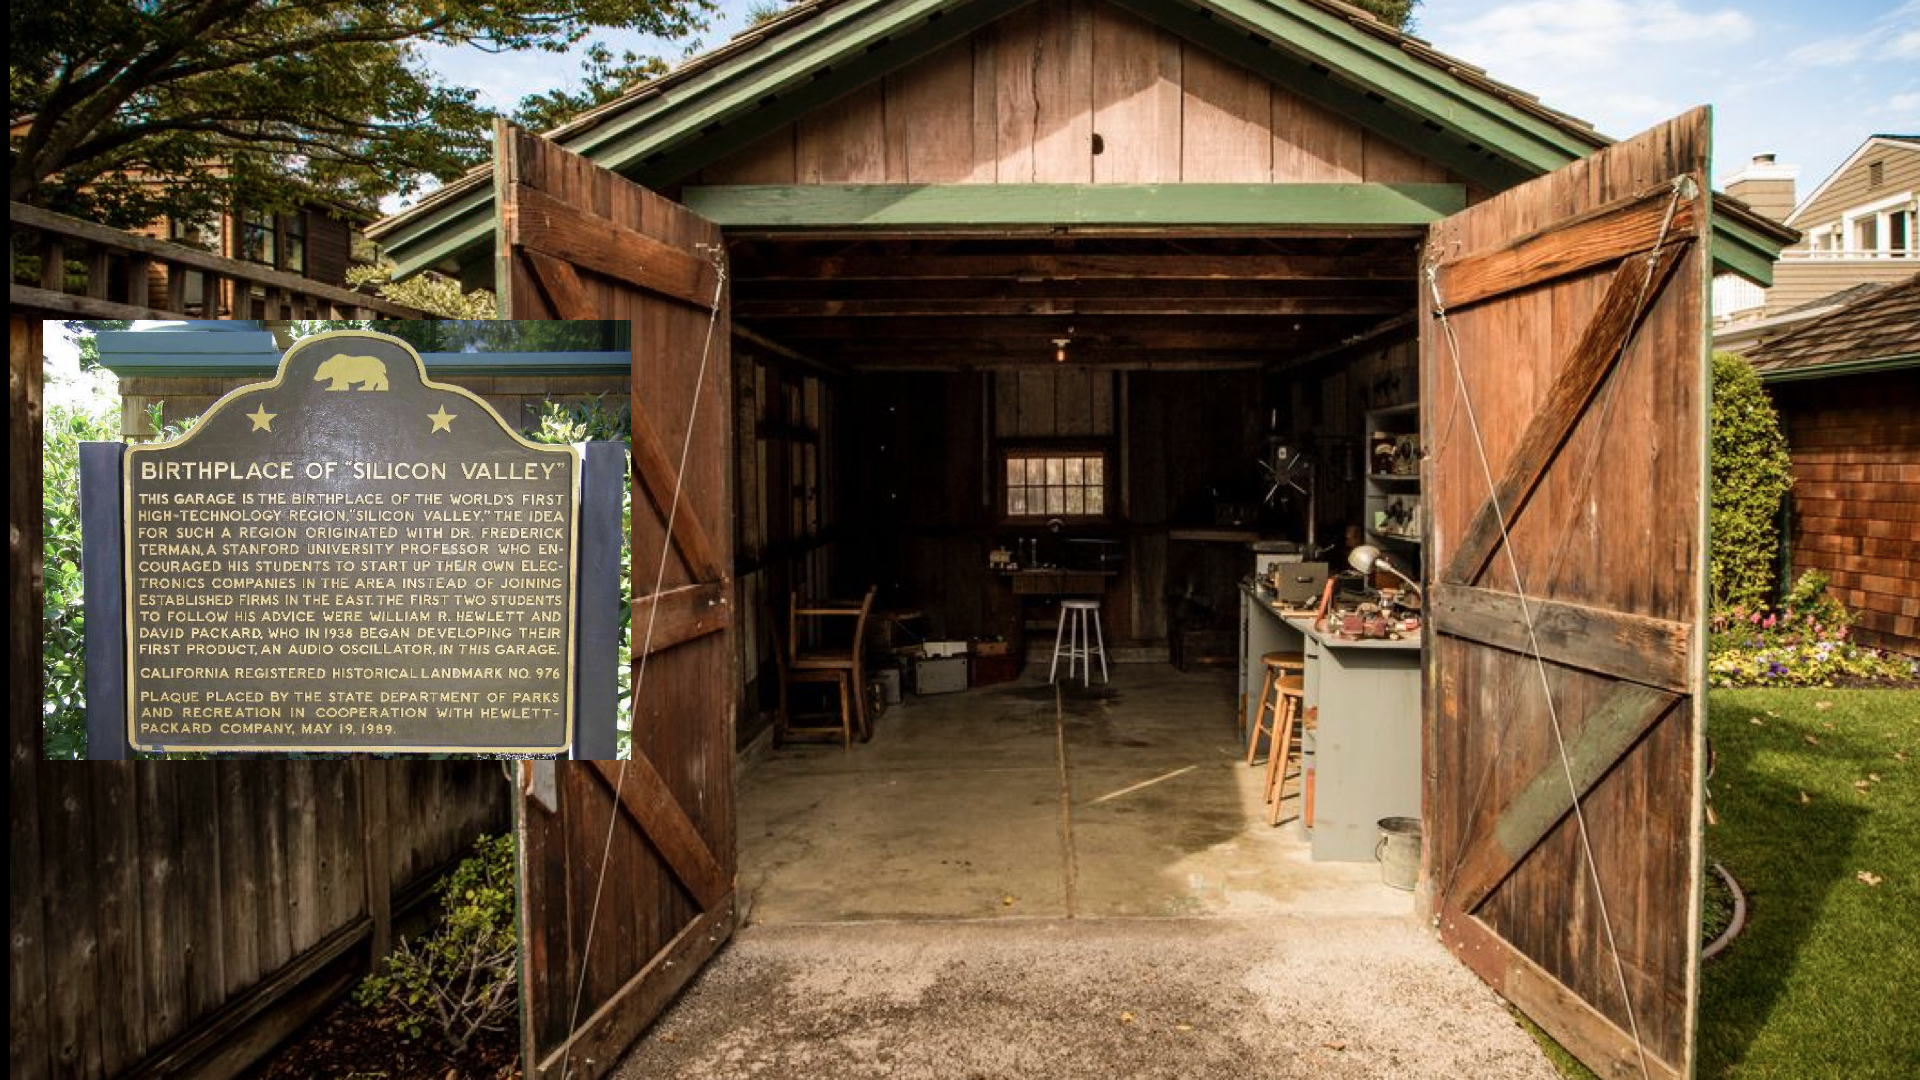 """The HP Garage, also known as """"The Birthplace of Silicon Valley,"""" spawned a myth about innovation that's no longer relevant (if it ever was)."""